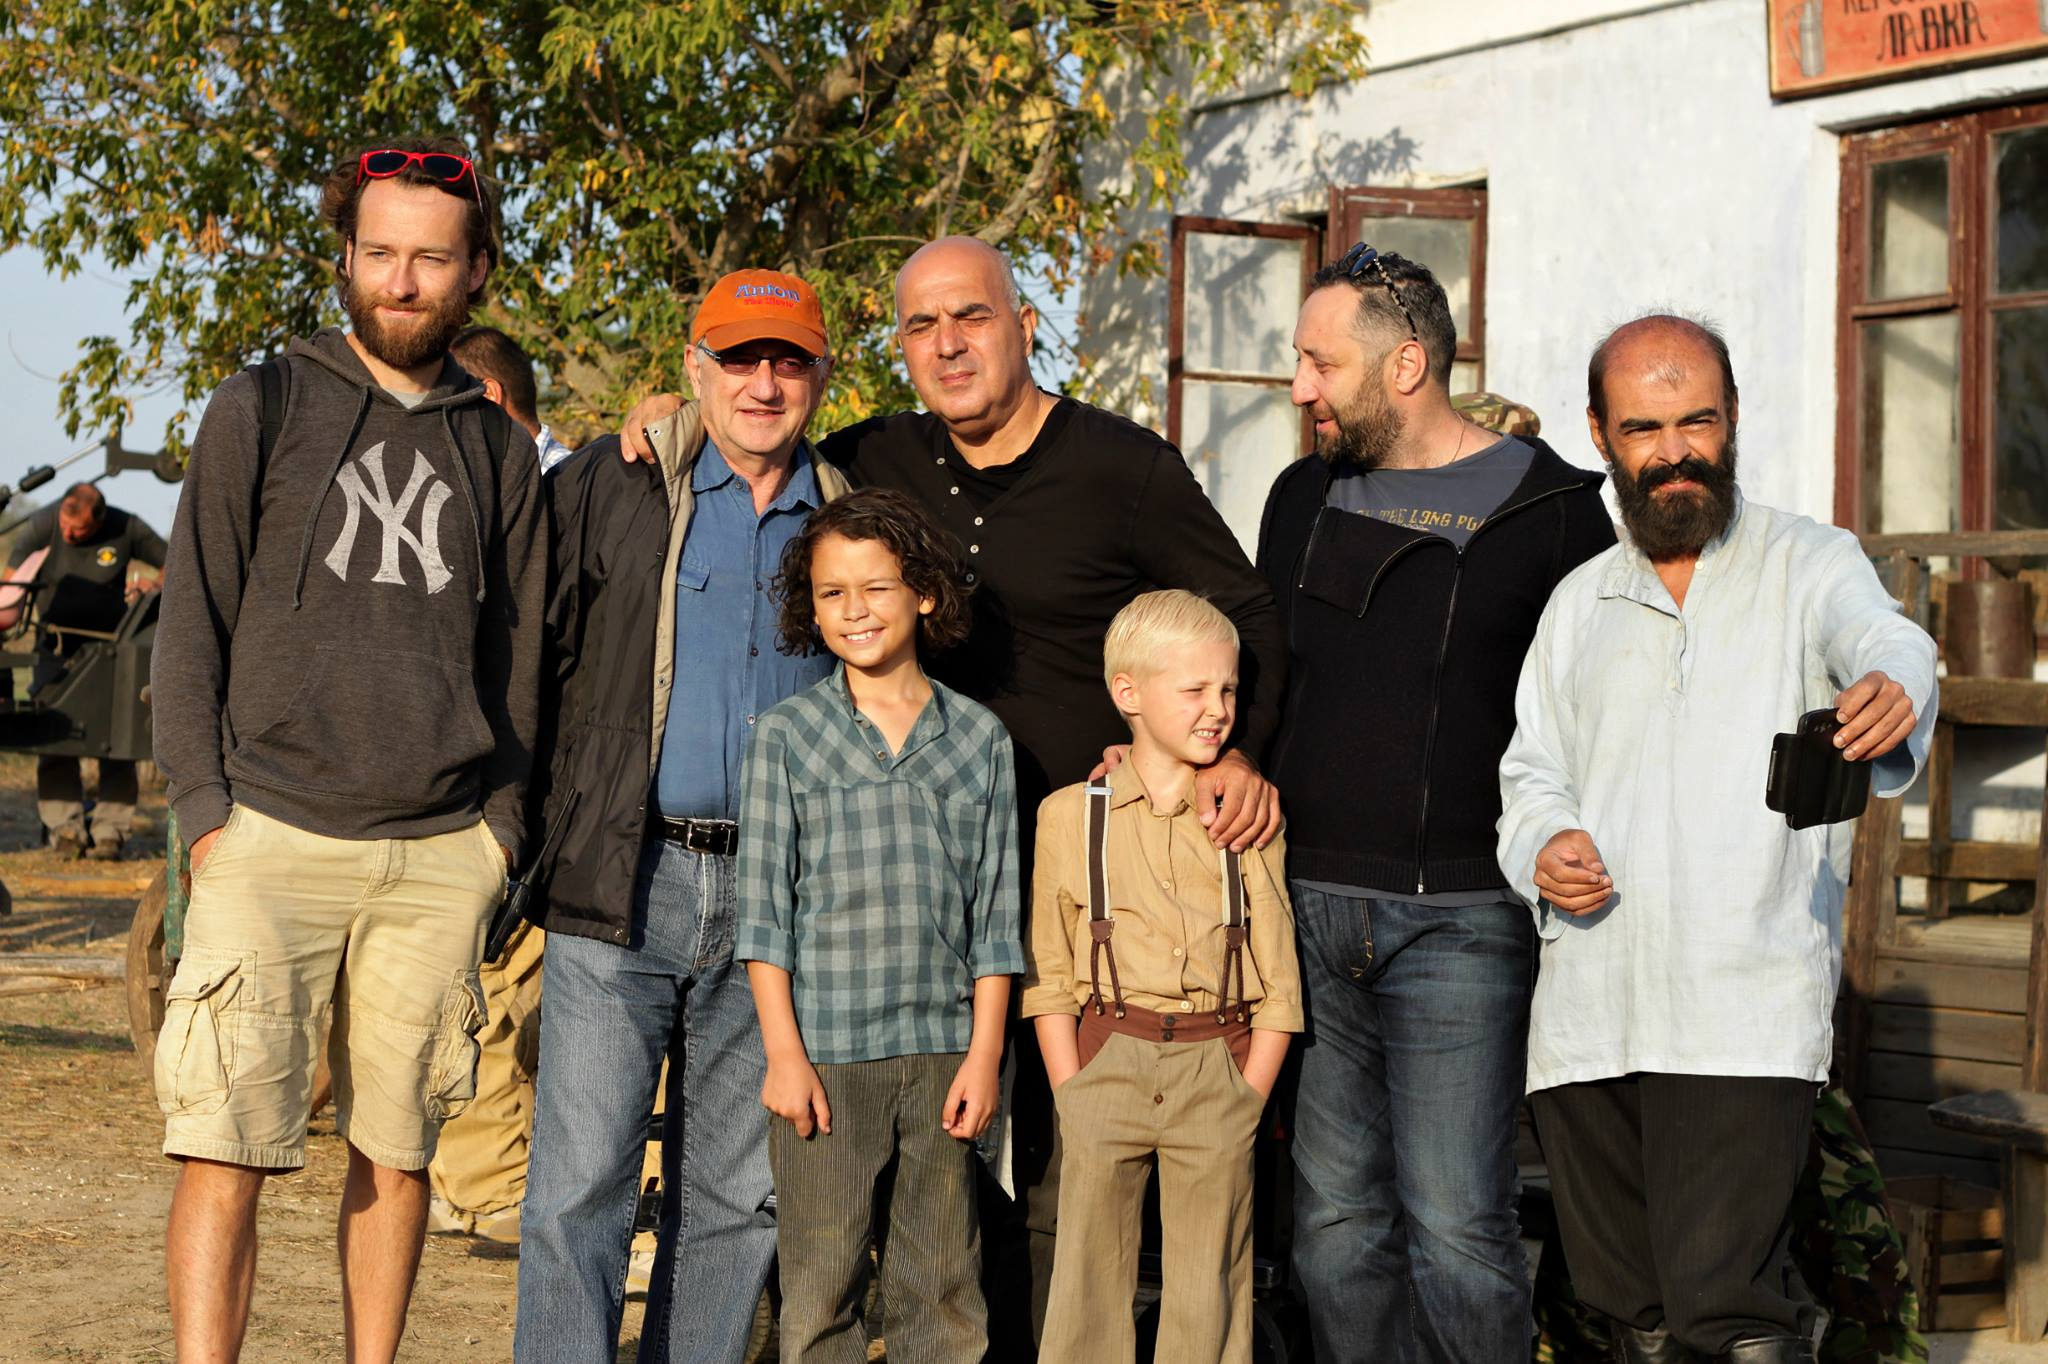 On the set in a small village near Odessa, Ukraine. From left to right: Director of Photography Mikhail Petrenko; Dale Eisler; Director Zaza Urushadze; co-producer Mirza Davitaia; actor Vladimer Levitzki. Front row left to right Mykyta Dziad who plays Jacob, Nikita Shlanchak who plays Anton. Photo courtesy of Dale Eisler